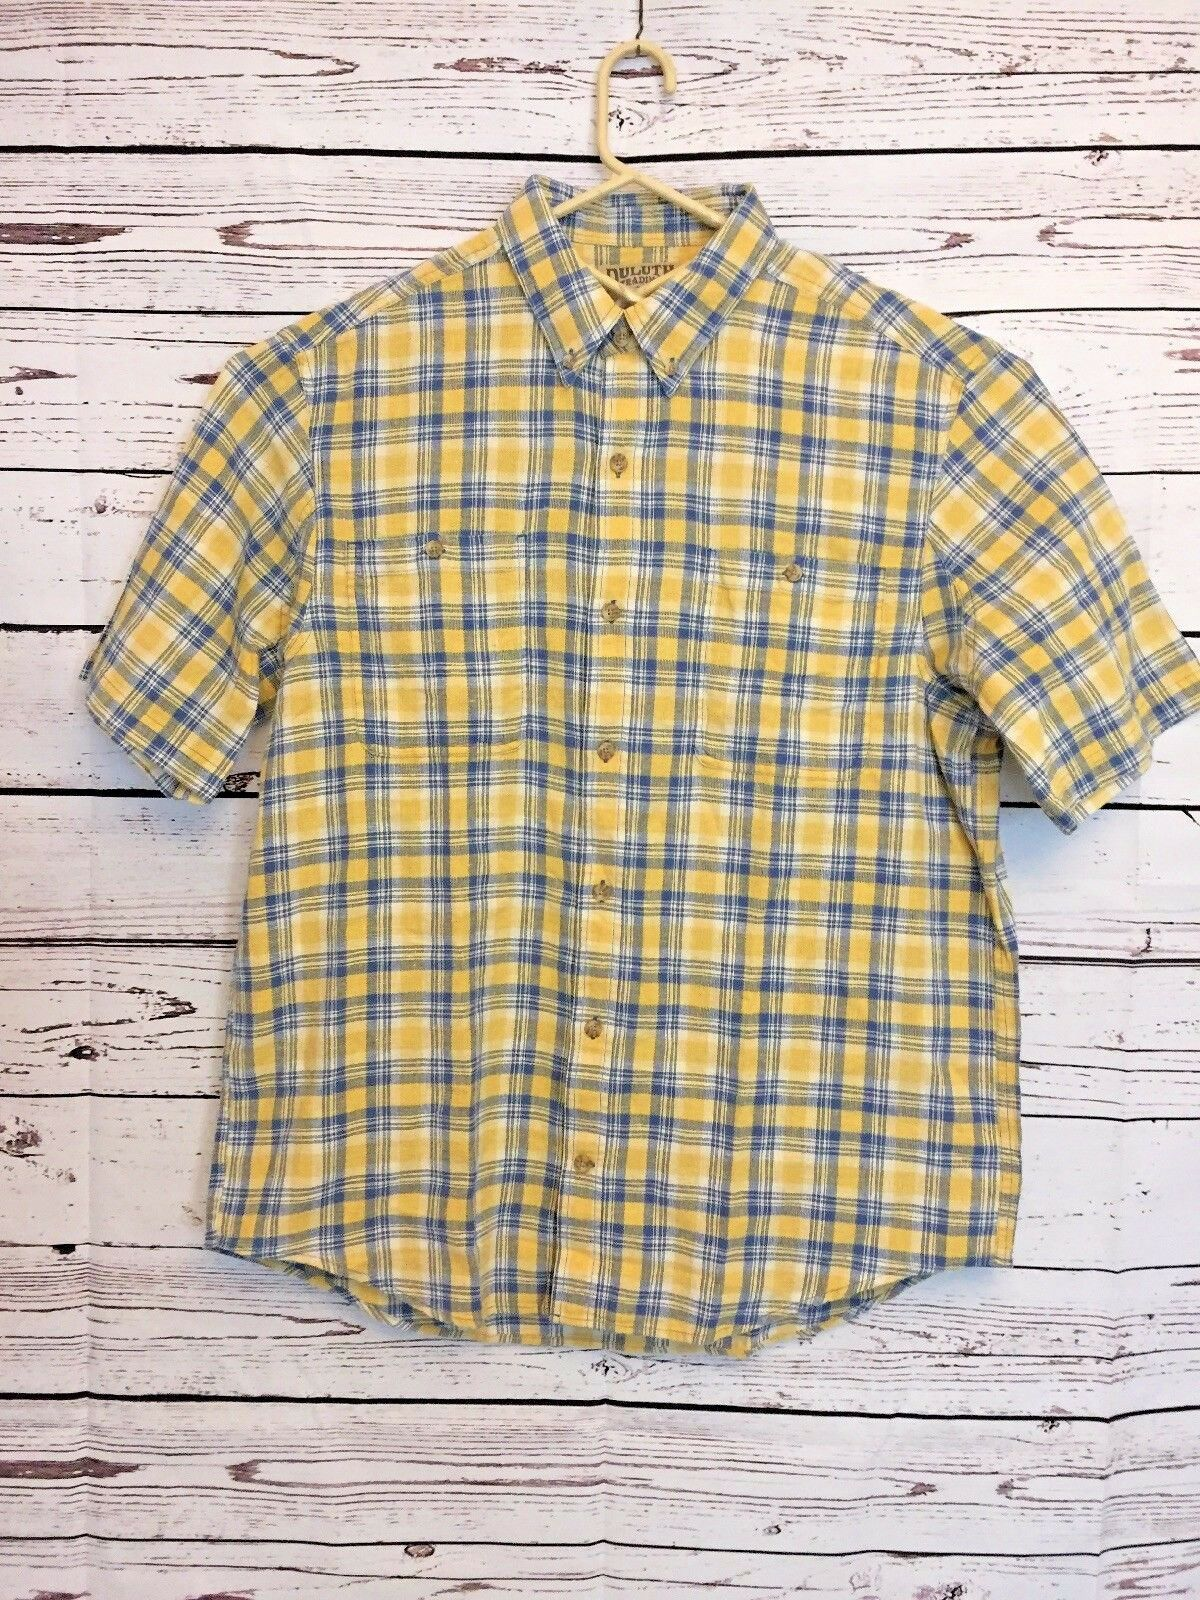 Duluth Trading Company Mens Large L Yellow bluee Plaid Hemp Organic Cotton F69